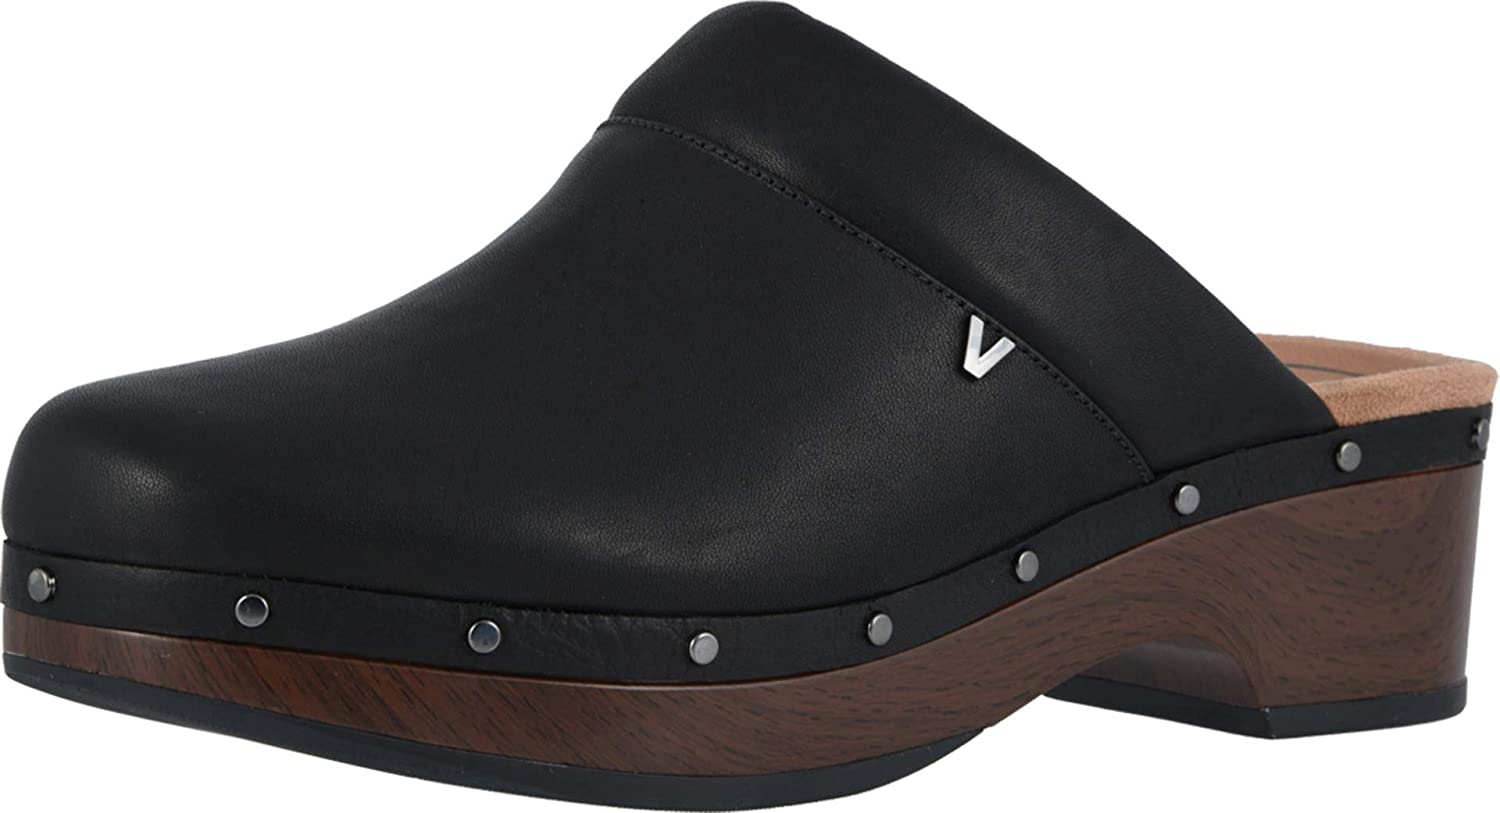 Vionic Women's Day Kacie Clog - Ladies Slip-on Mule with Concealed Orthotic Arch Support